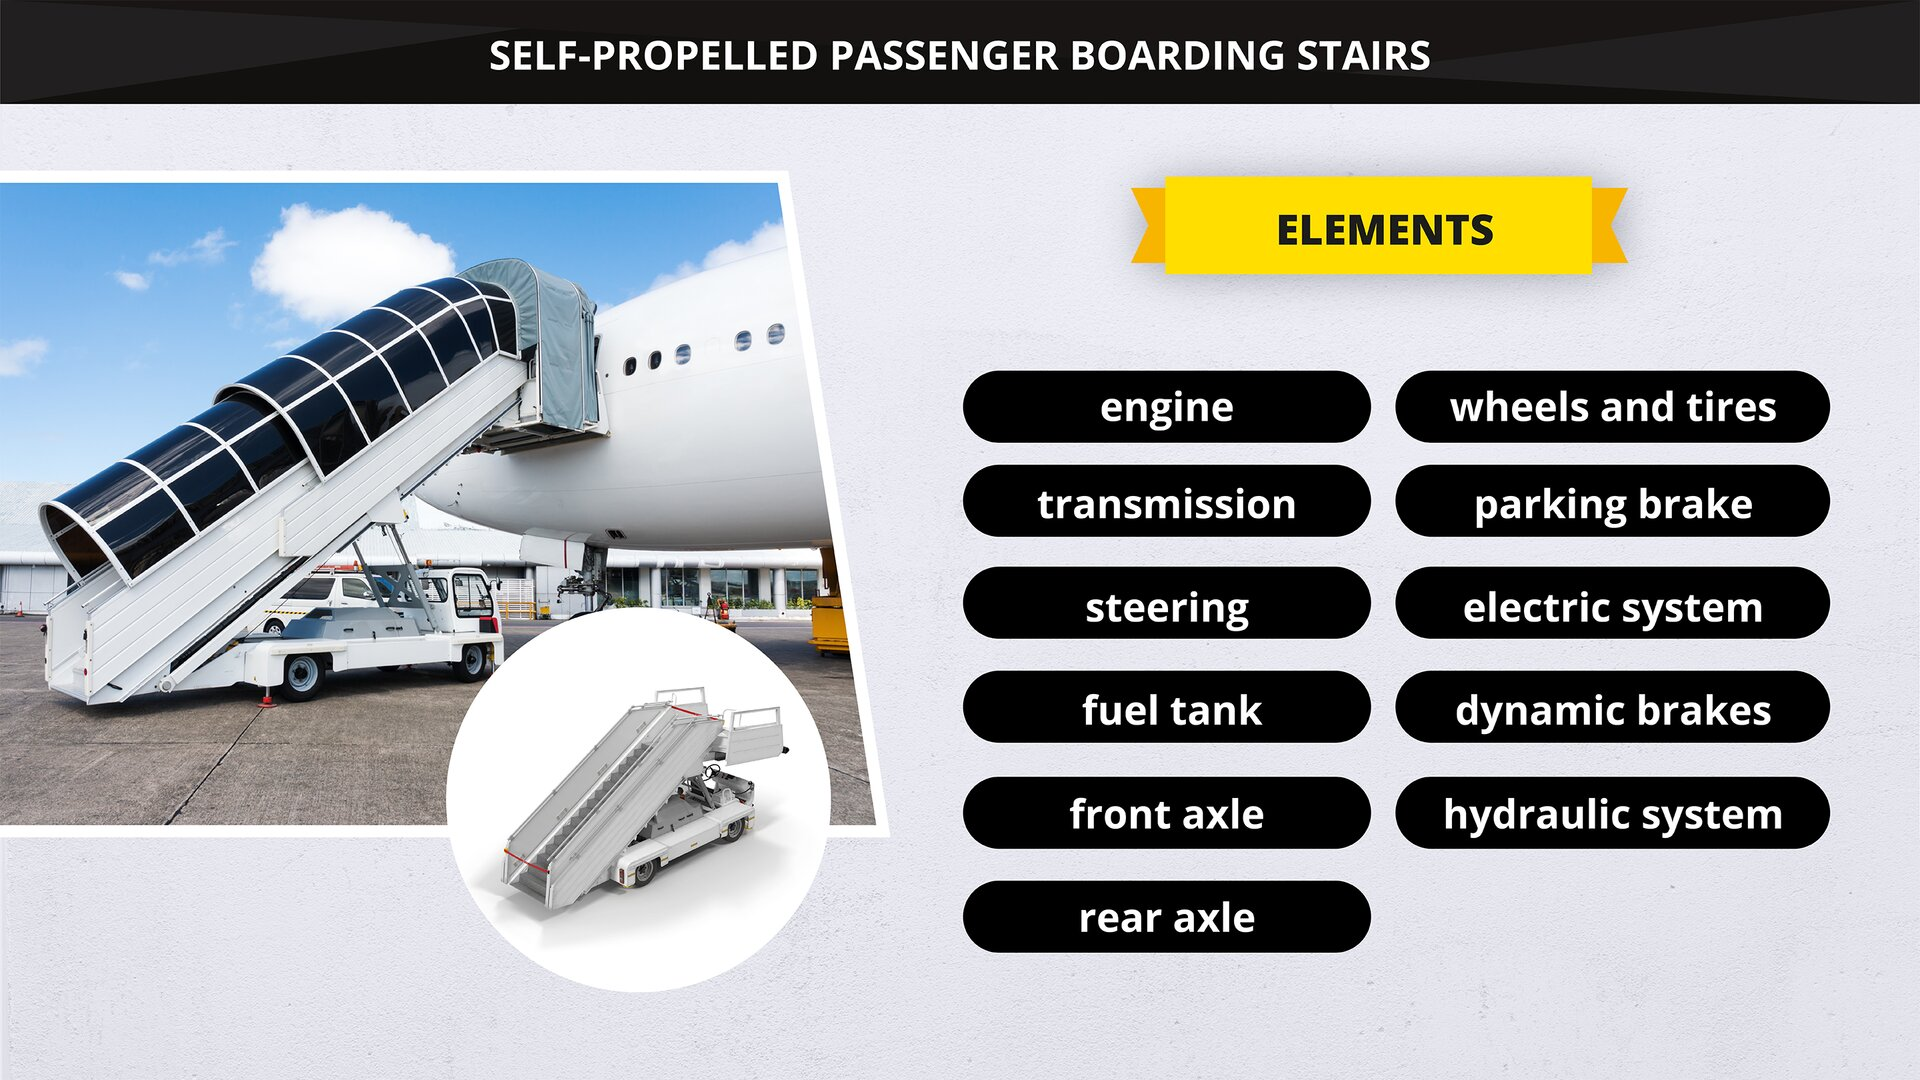 The image presents self-propelled passenger boarding stairs and their elements. Grafika przedstawia samojezdne schody pasażerskie oraz wyszczególnia ich elementy.